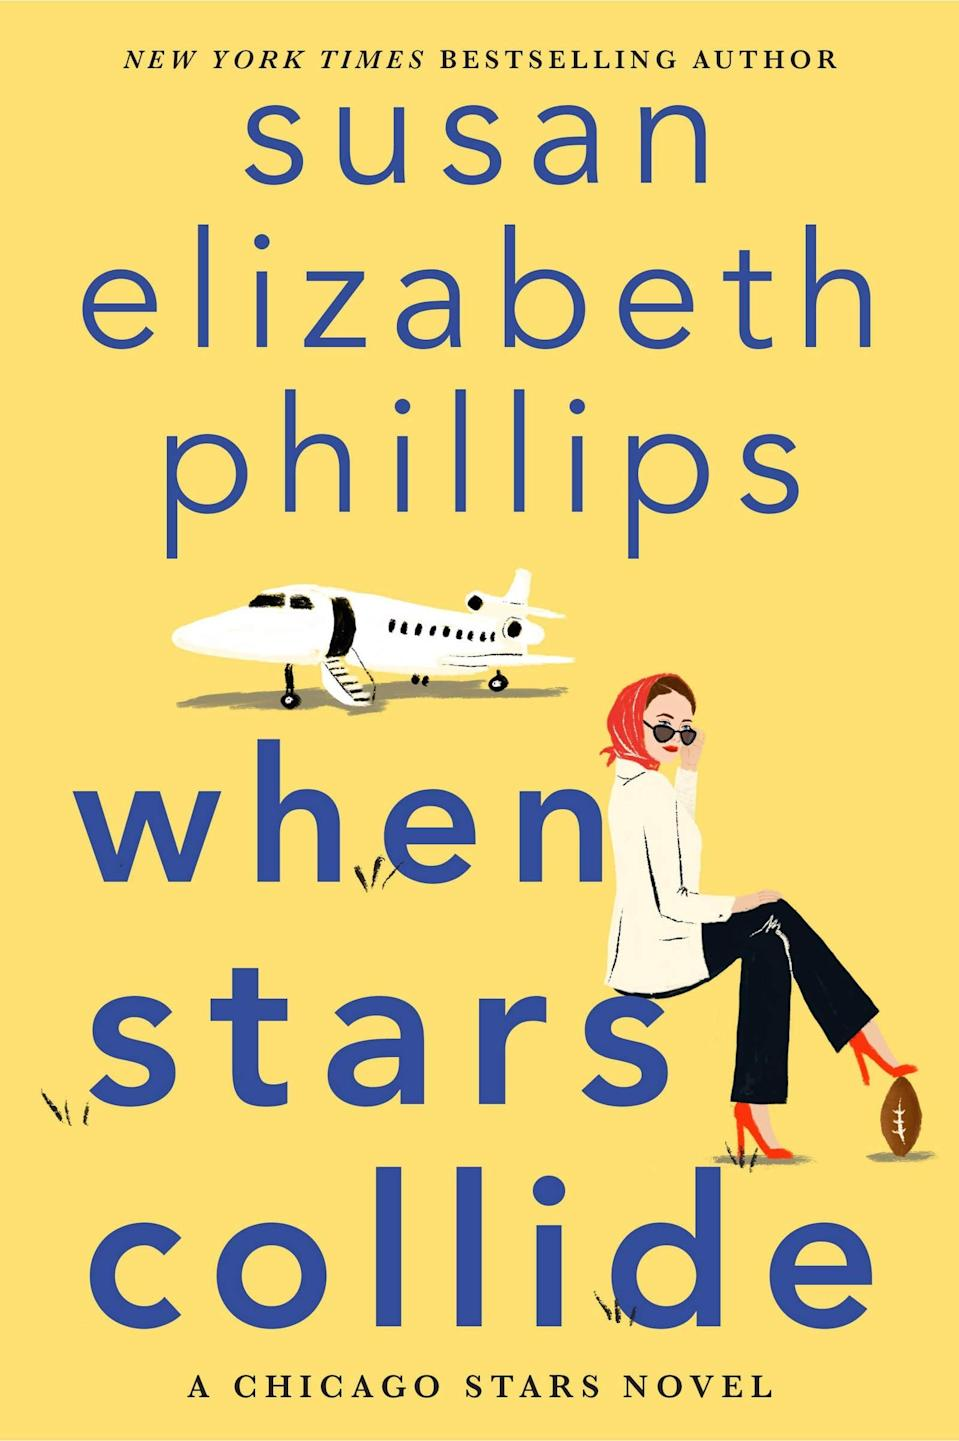 <p>An opera singer and a football player are forced to go on a promotional tour together in Susan Elizabeth Phillips's hilarious <span><strong>When Stars Collide</strong></span>. Thaddeus and Olivia are opposites in every way, and they're determined to make each other miserable on their trip. However, it doesn't take them long to realize that deep down they might just have something in common after all. </p> <p><em>Out June 29</em></p>